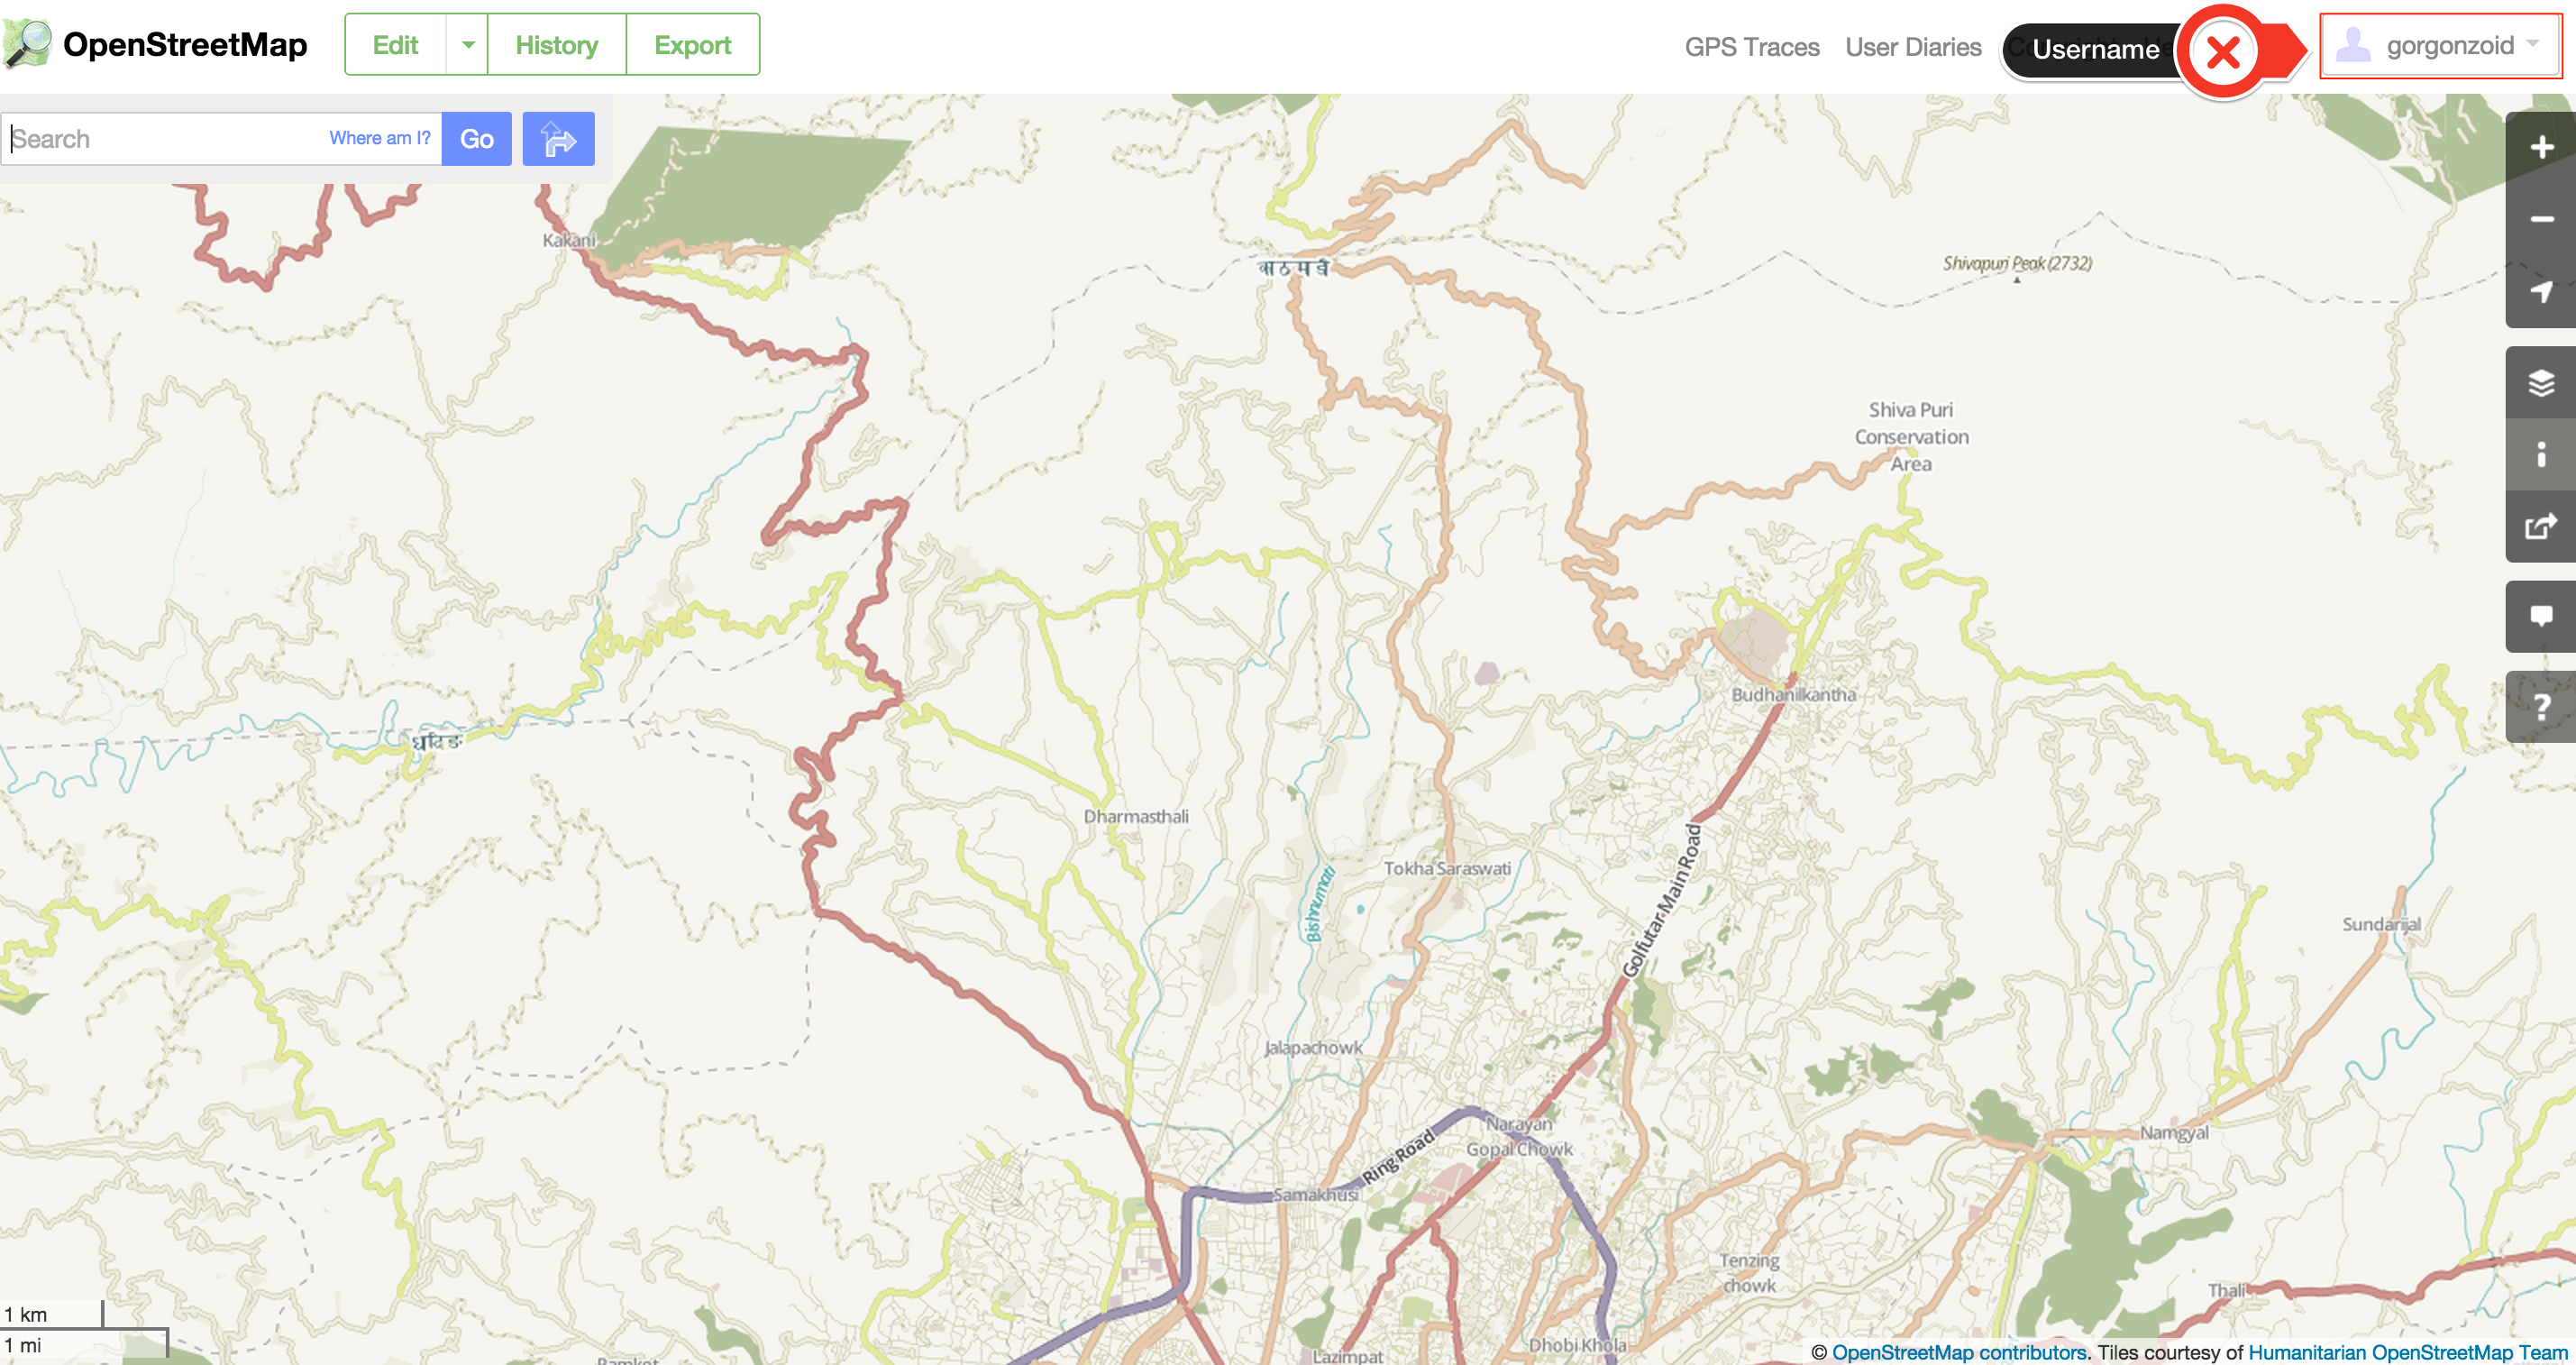 Getting Started with Open StreetMap for Nepal